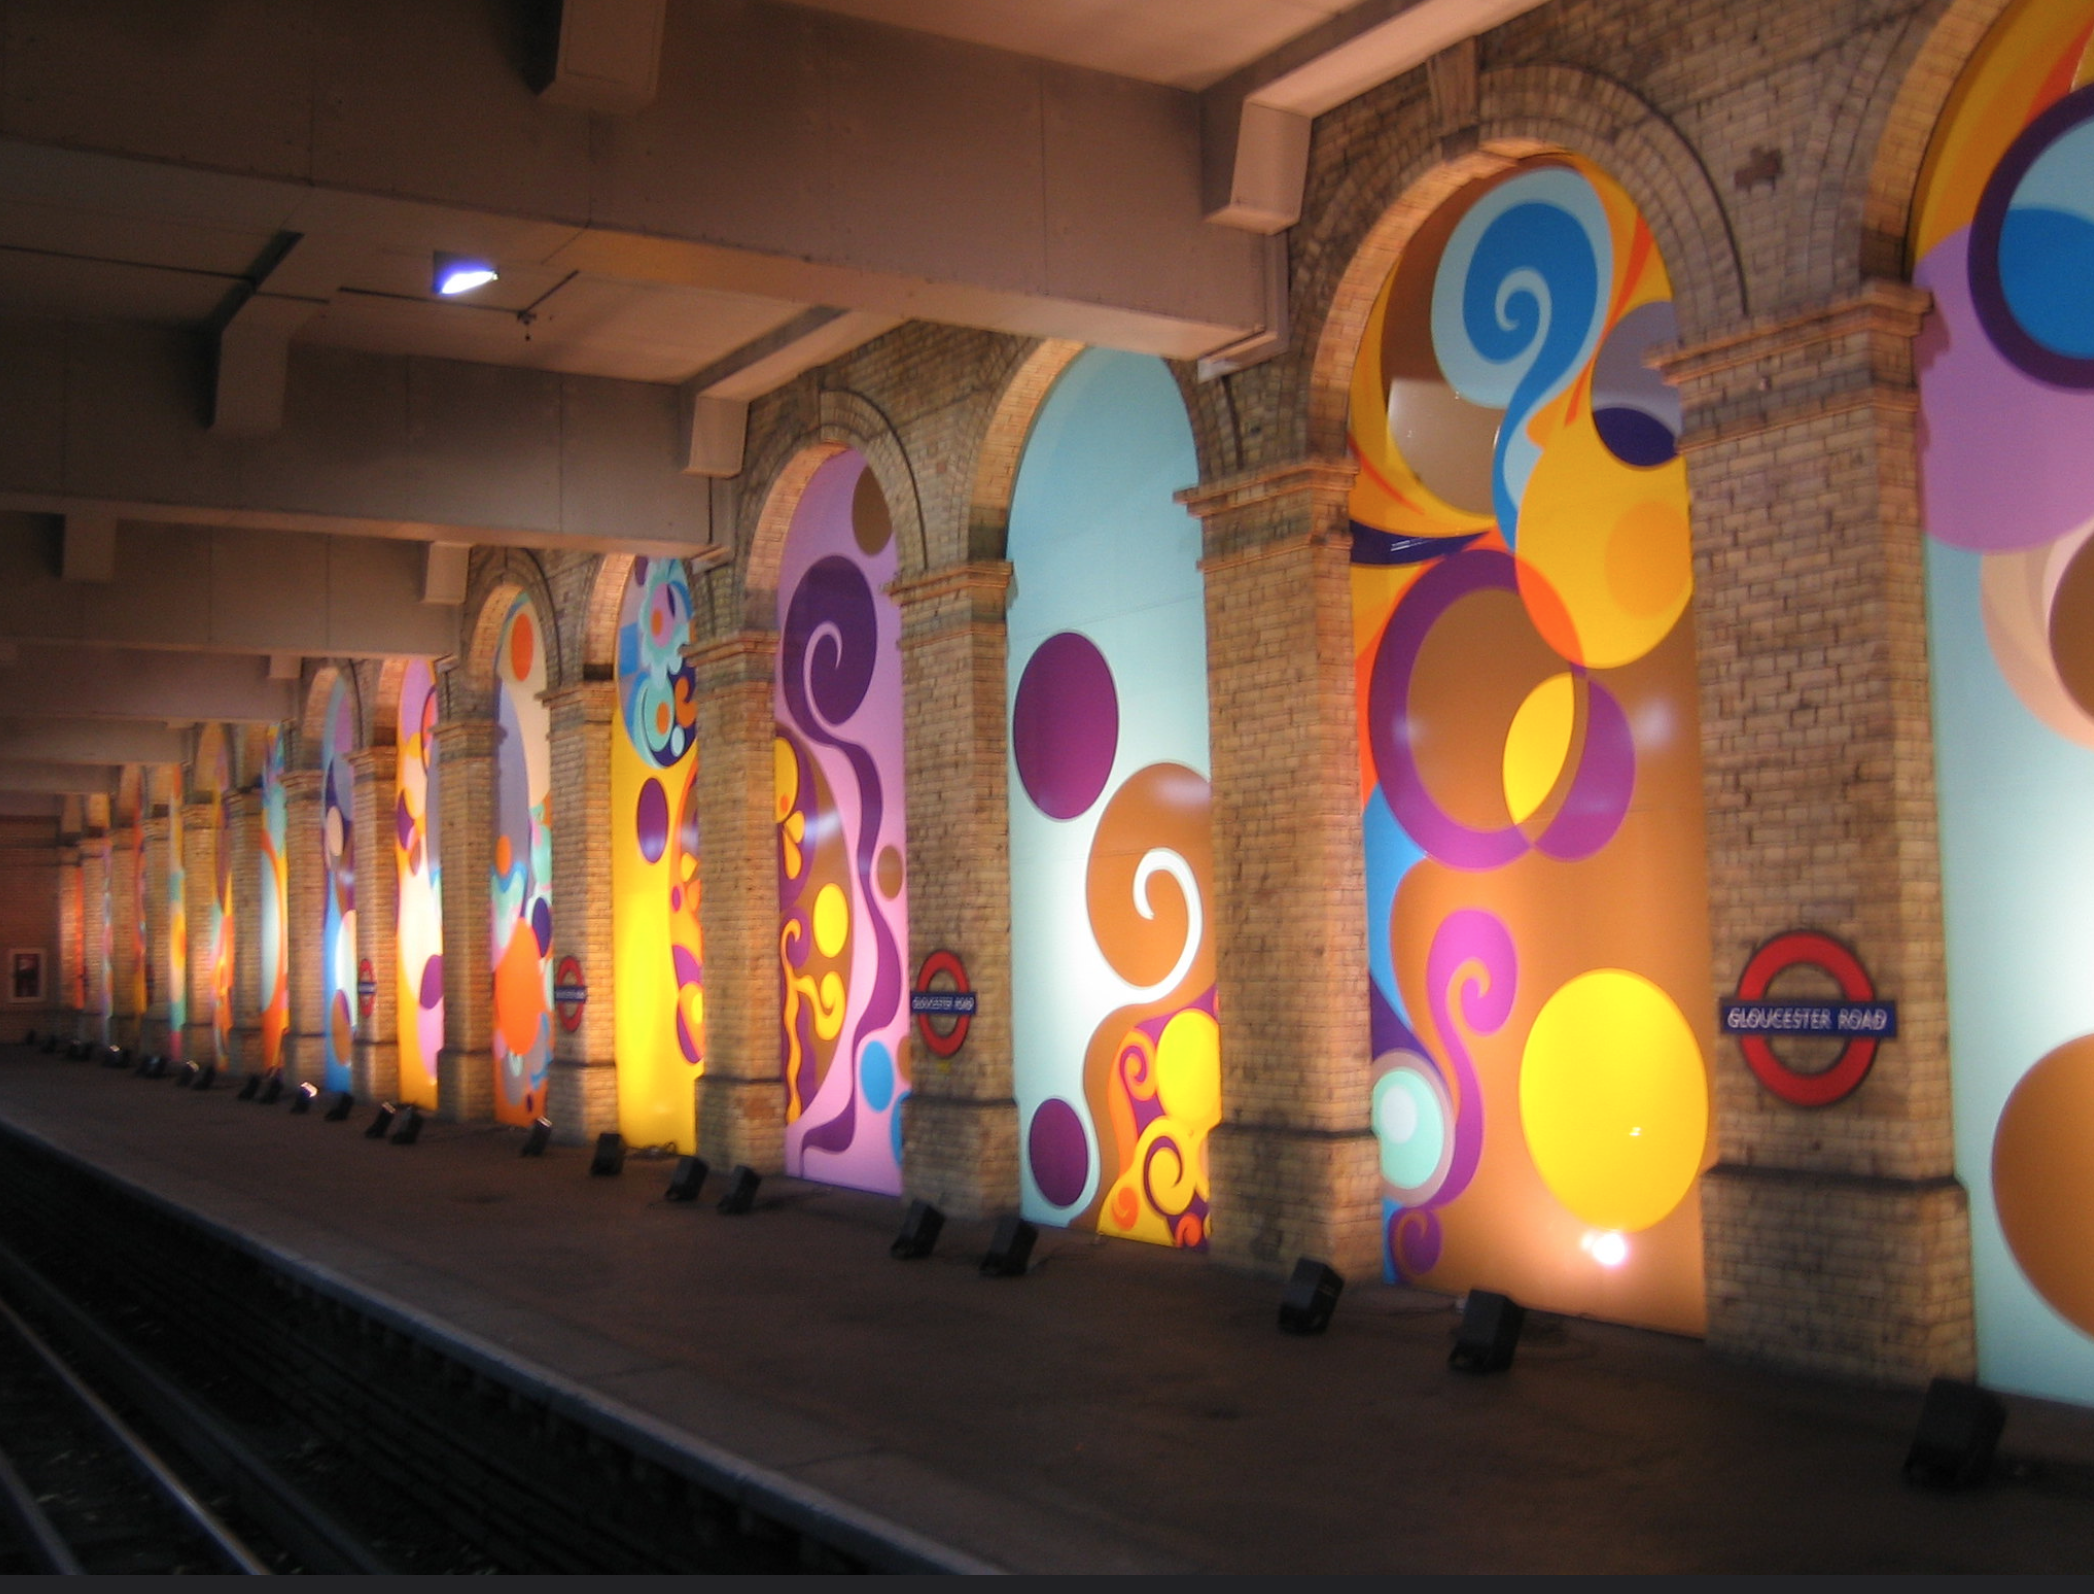 'Peace and Love' installation at Gloucester Road, 2005-2005 (image copyright Gordon Holy, via Flickr)